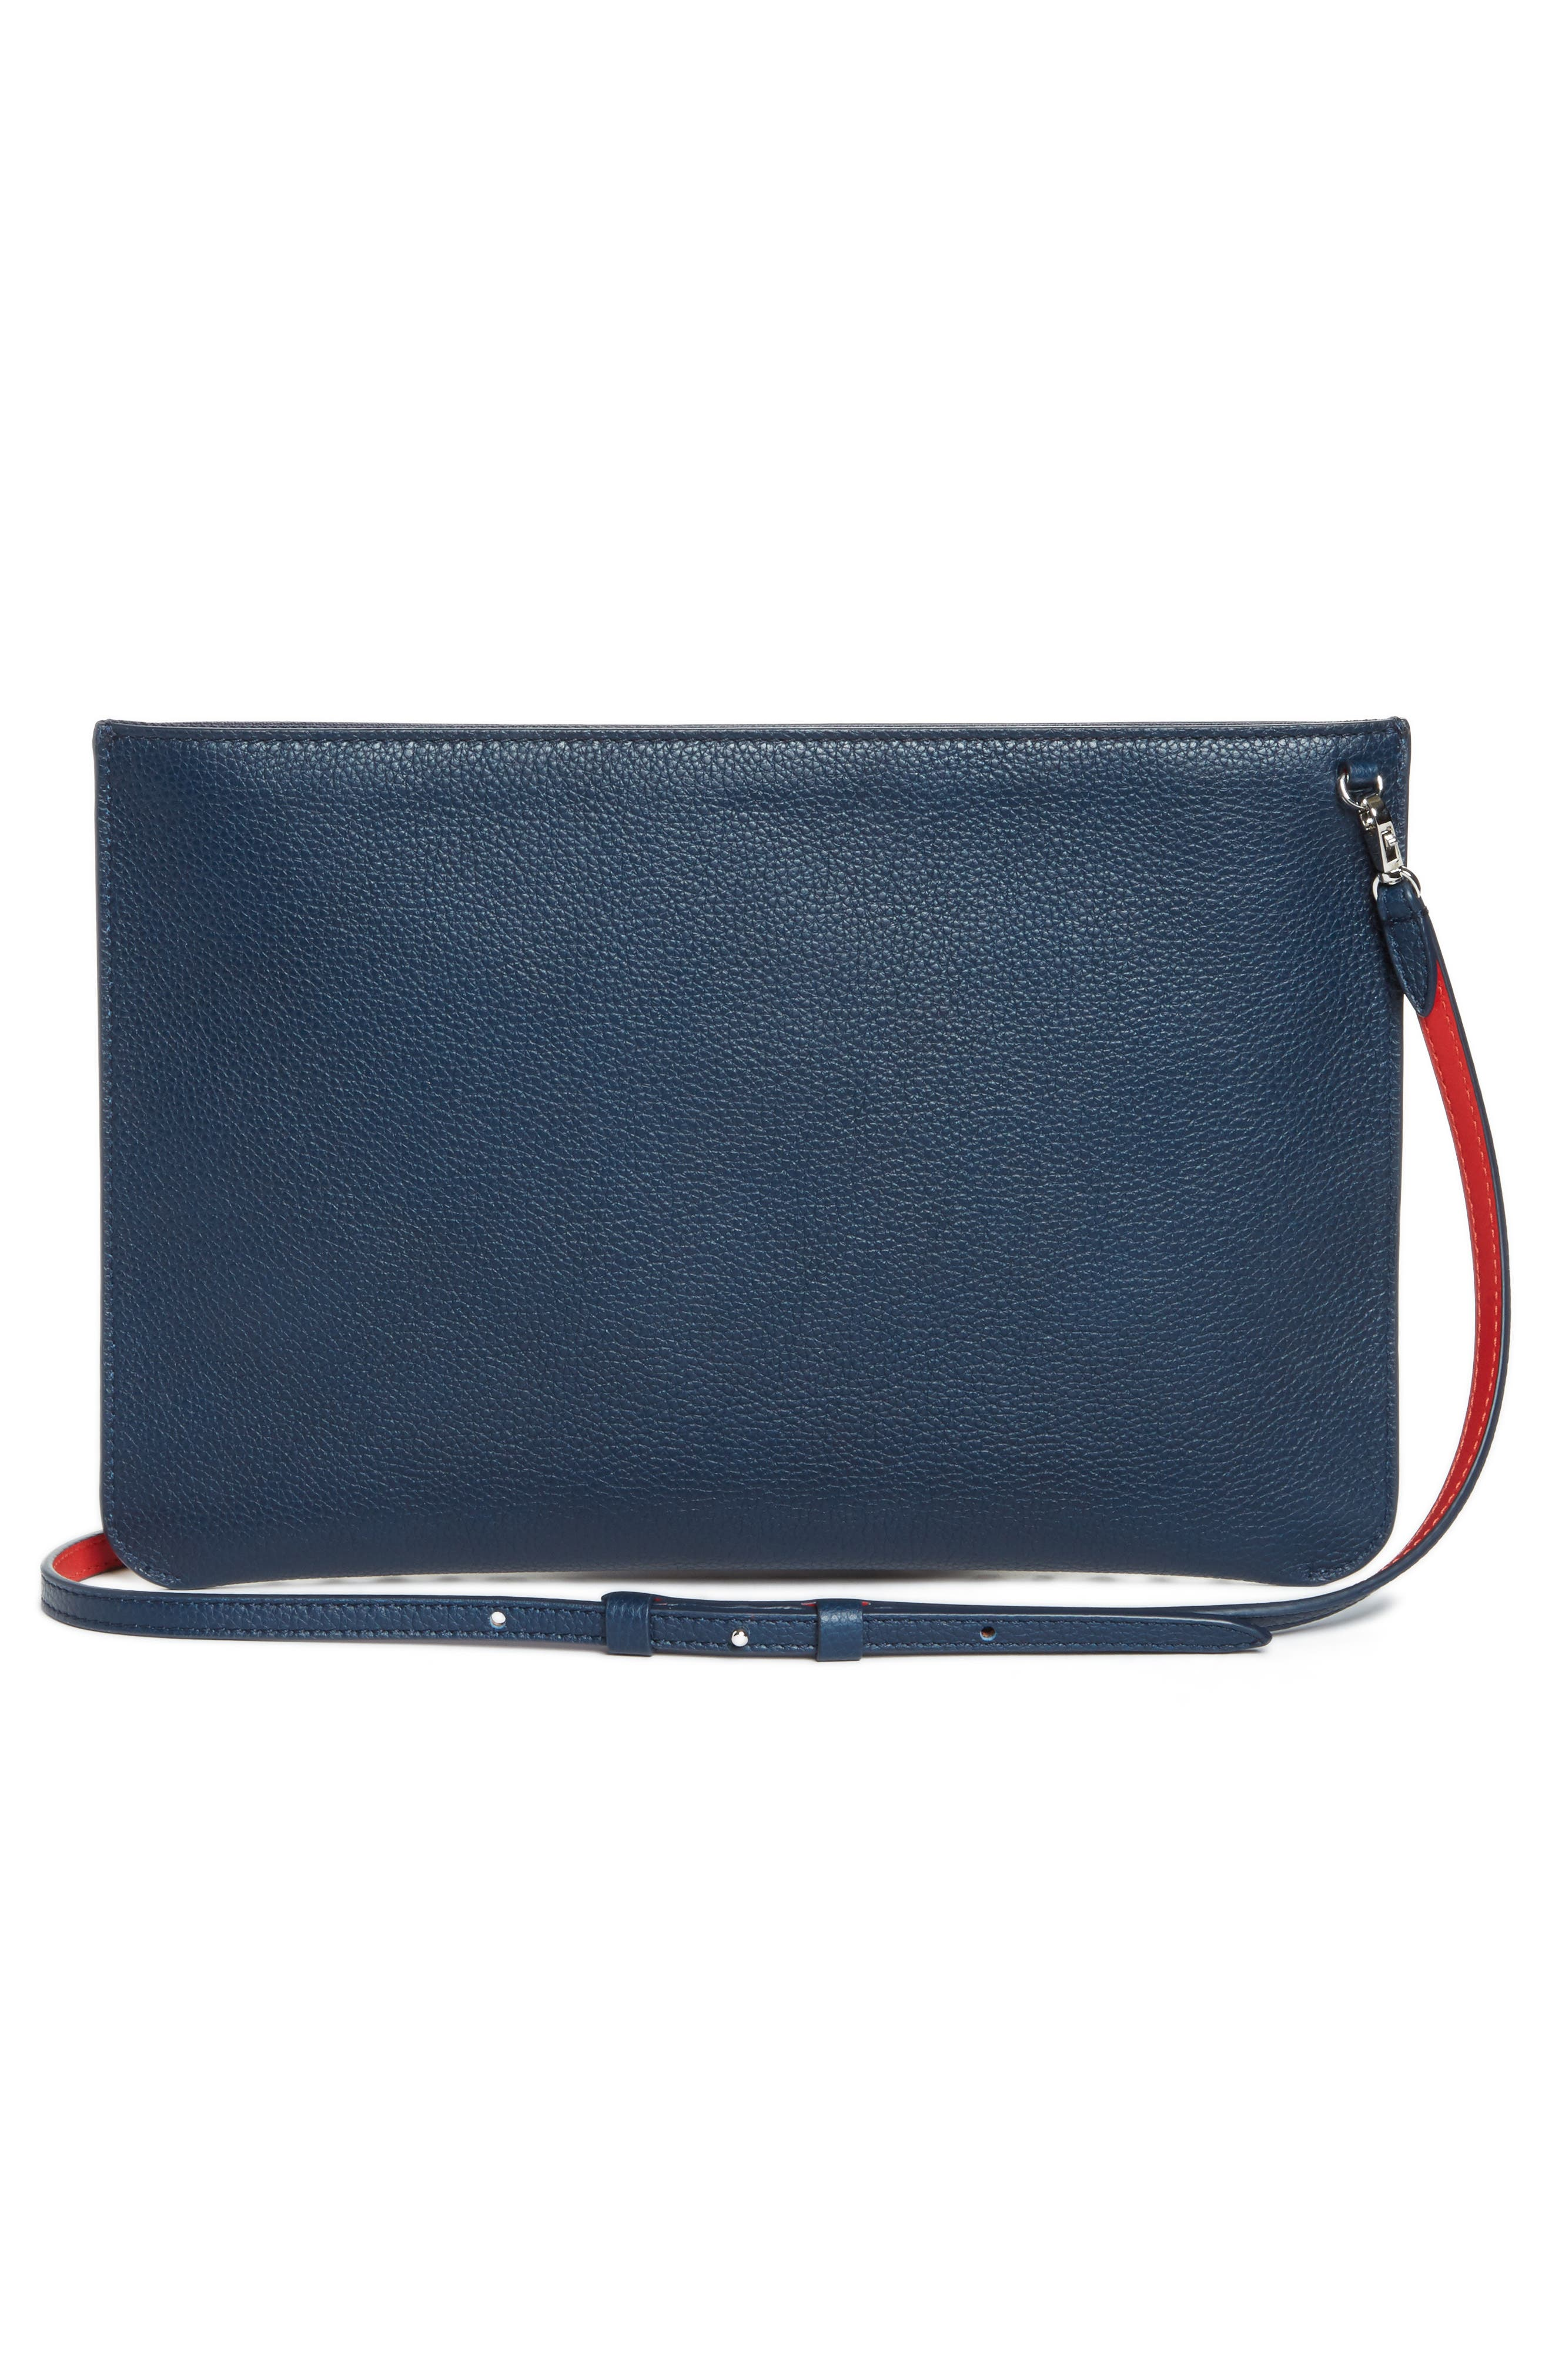 Alternate Image 3  - Christian Louboutin Loubiclutch Spiked Leather Clutch